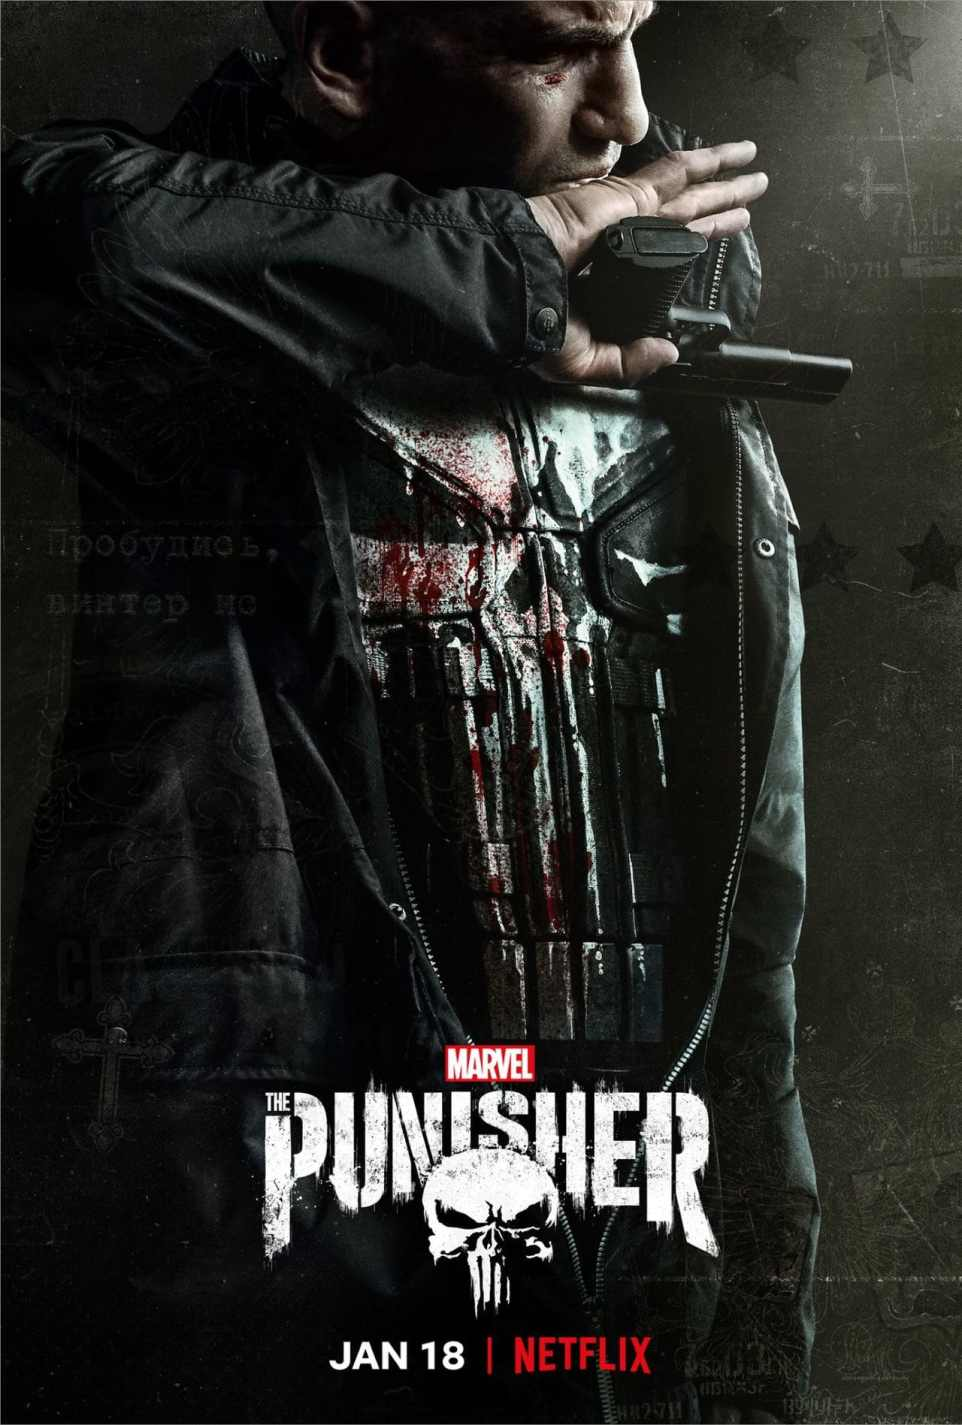 Marvel's The Punisher Season 2   Reactions   LIVING LIFE FEARLESS